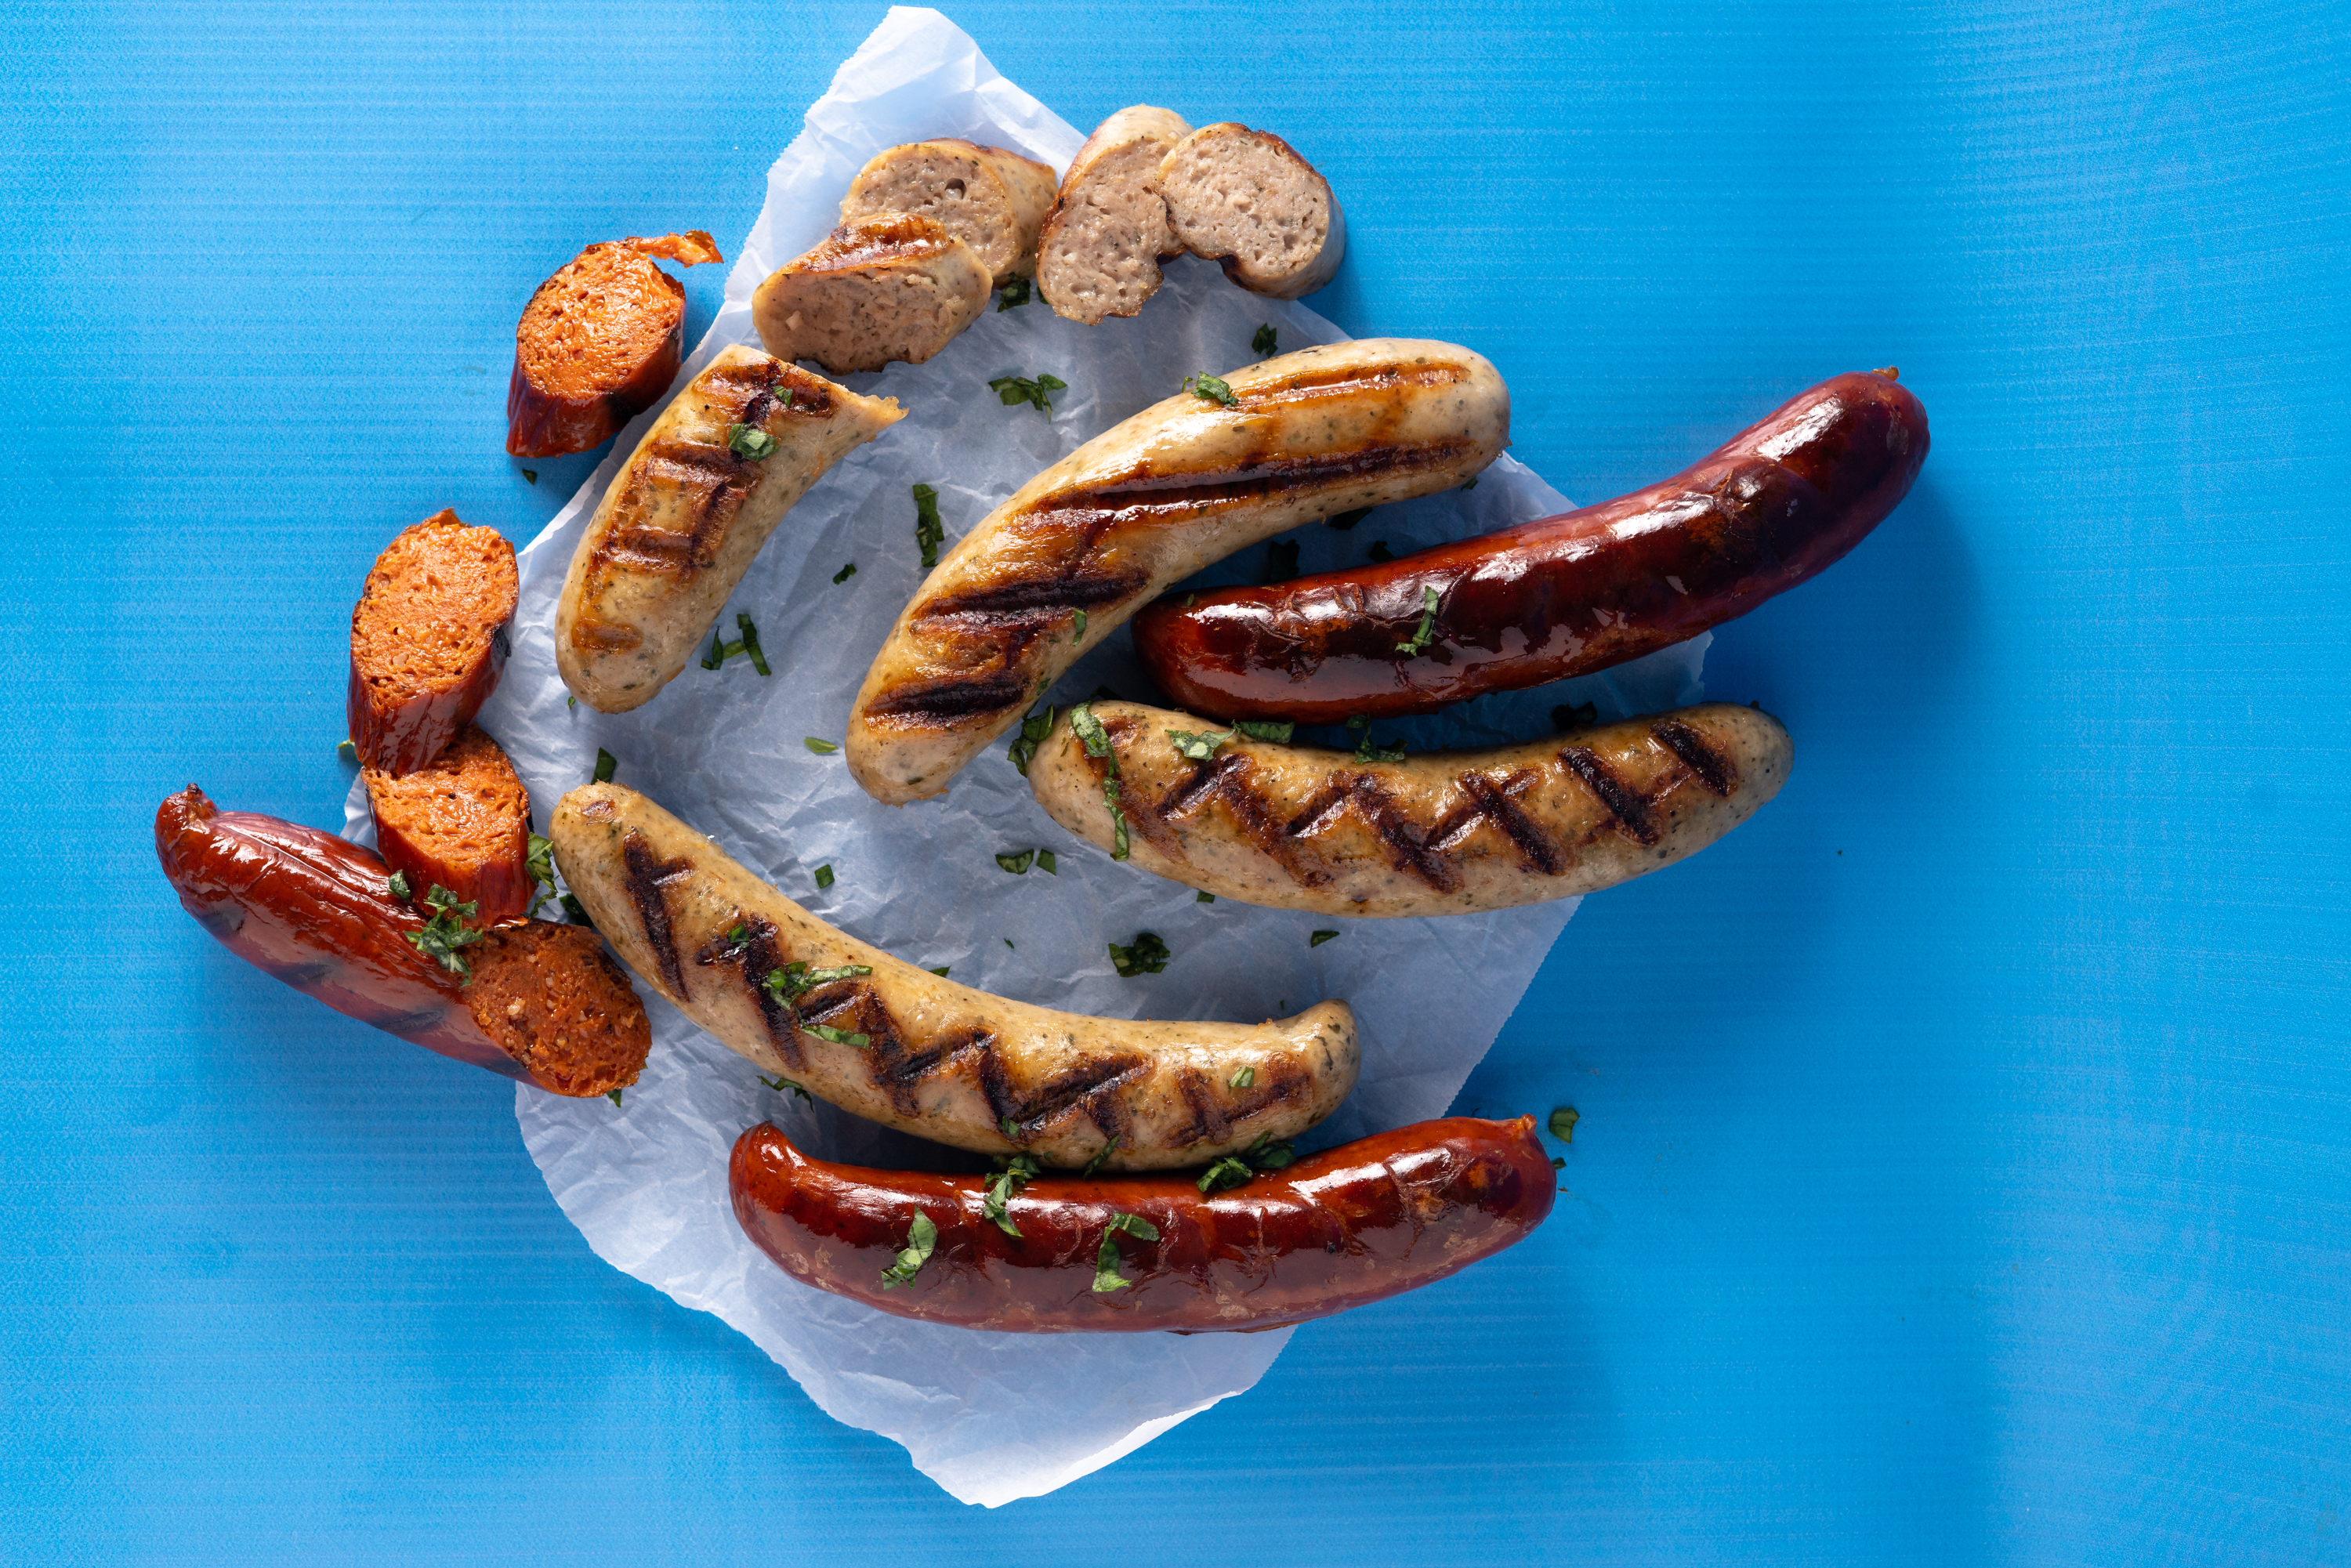 image of Olympia Provisions Sausages courtesy of Feast Portland and New Seasons Market